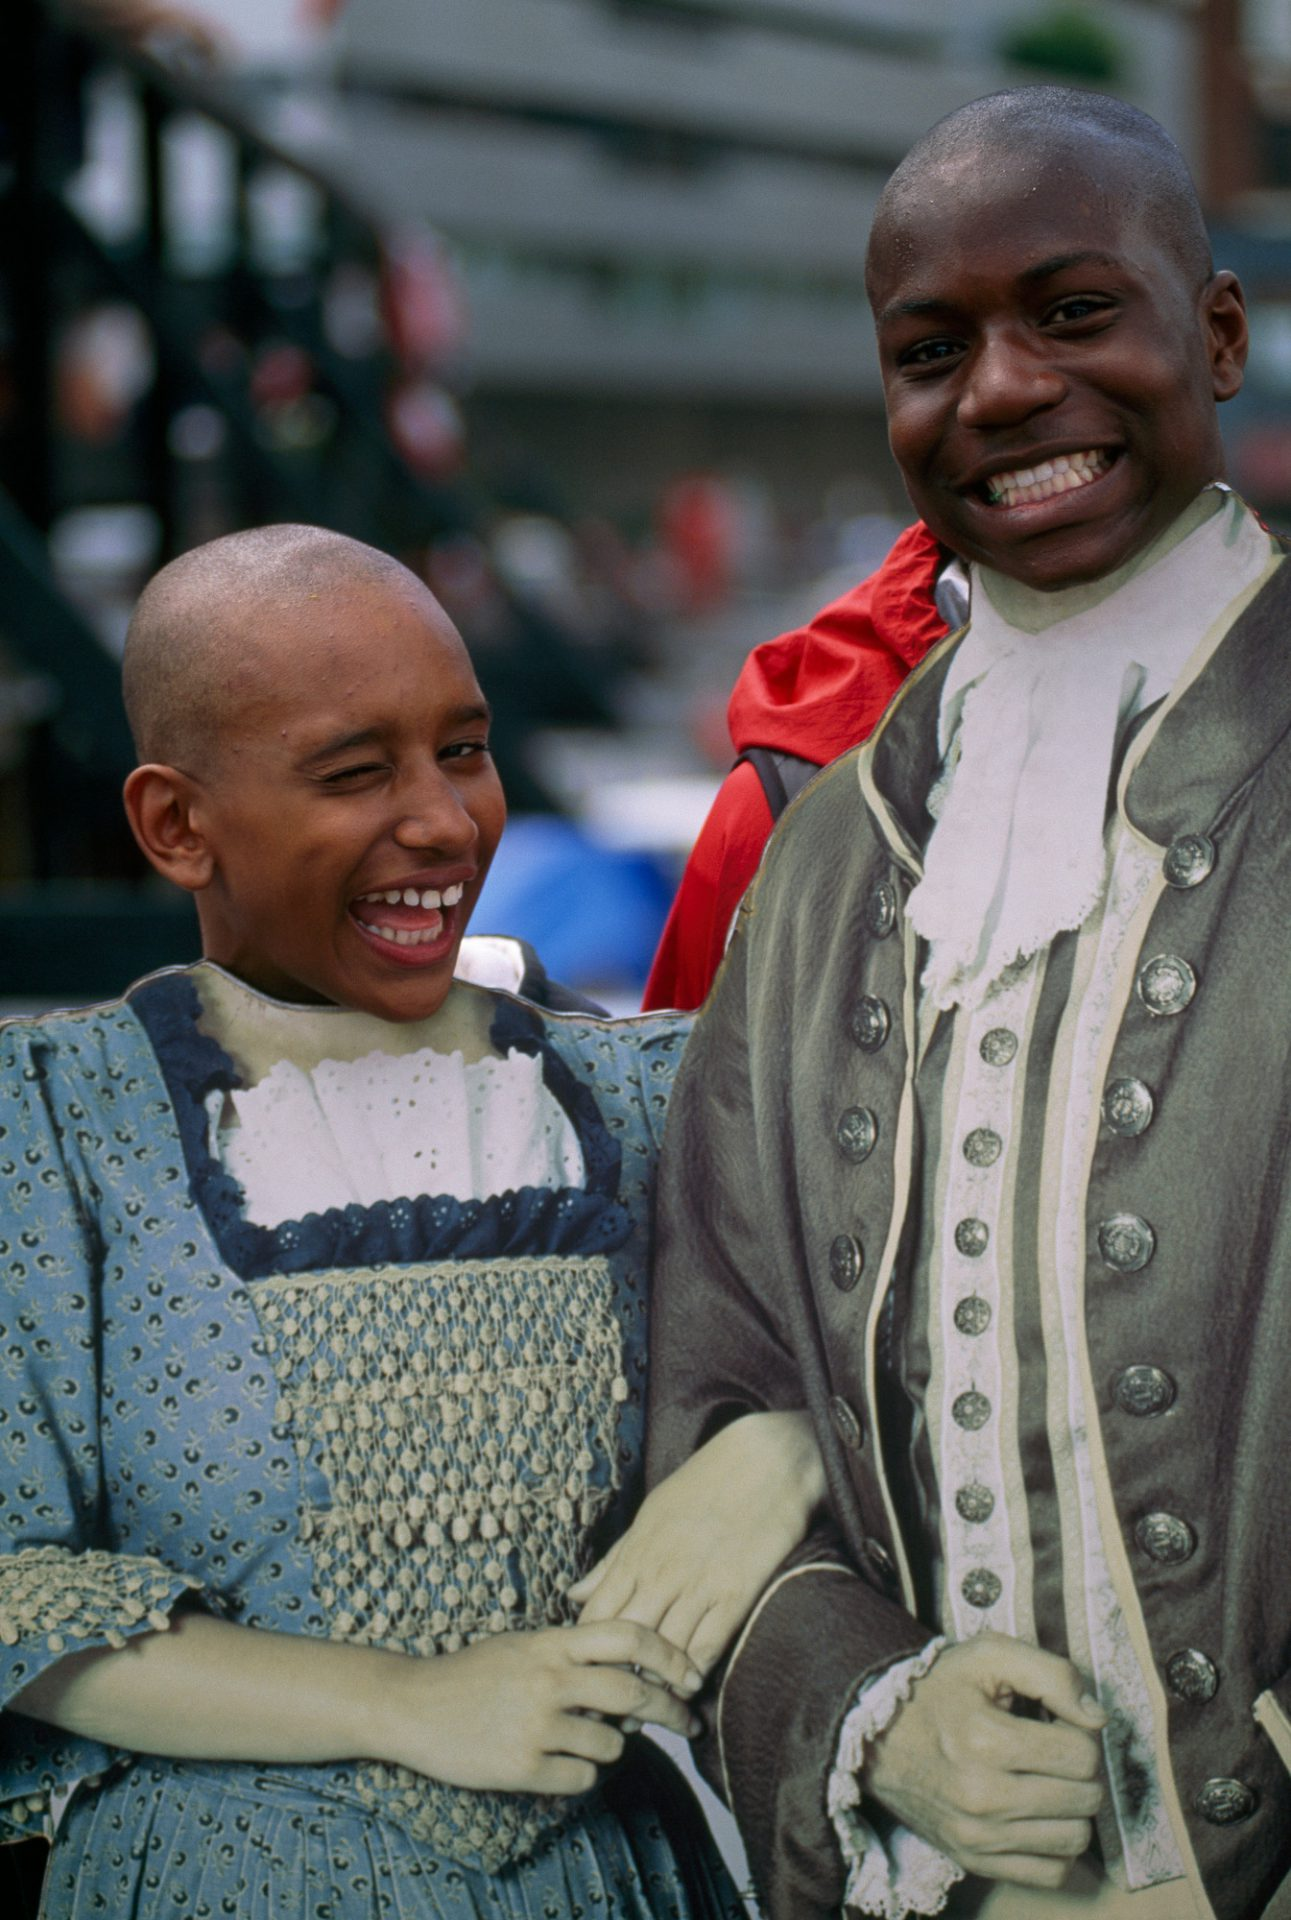 Photo: Two young boys pose behind colonial cutouts at the Boston Tea Party ship in Boston harbor, Massachusetts.